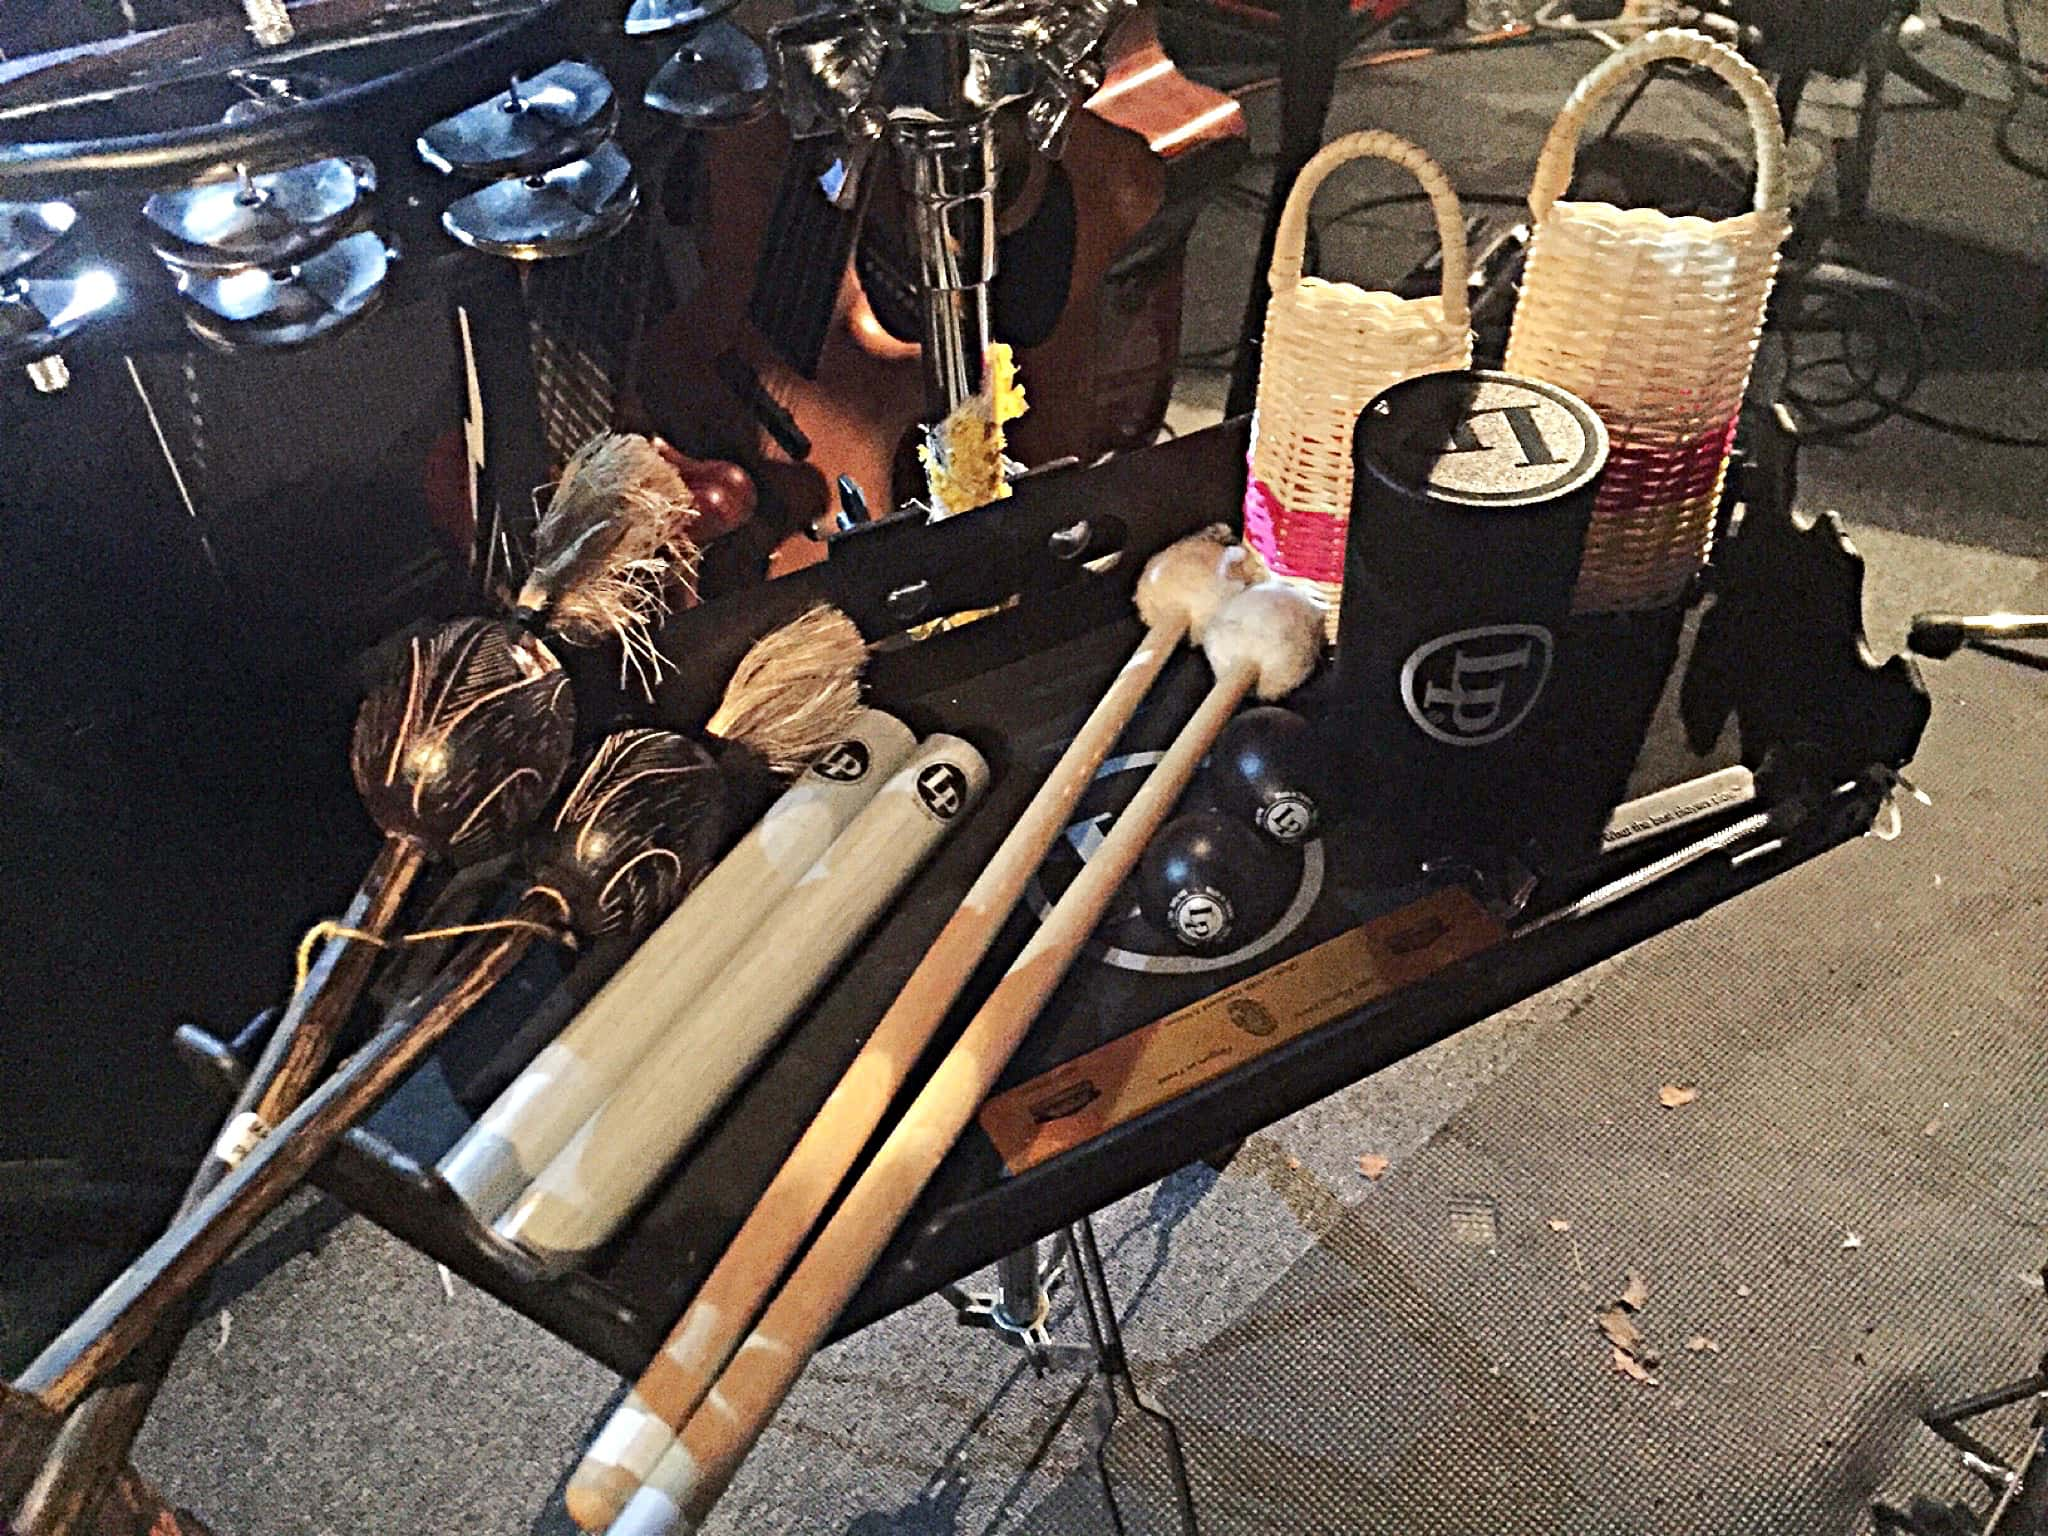 Patrick Lehosky's percussion setup for In the Heights at the CM Performing Arts Center in Oakdale, New York.